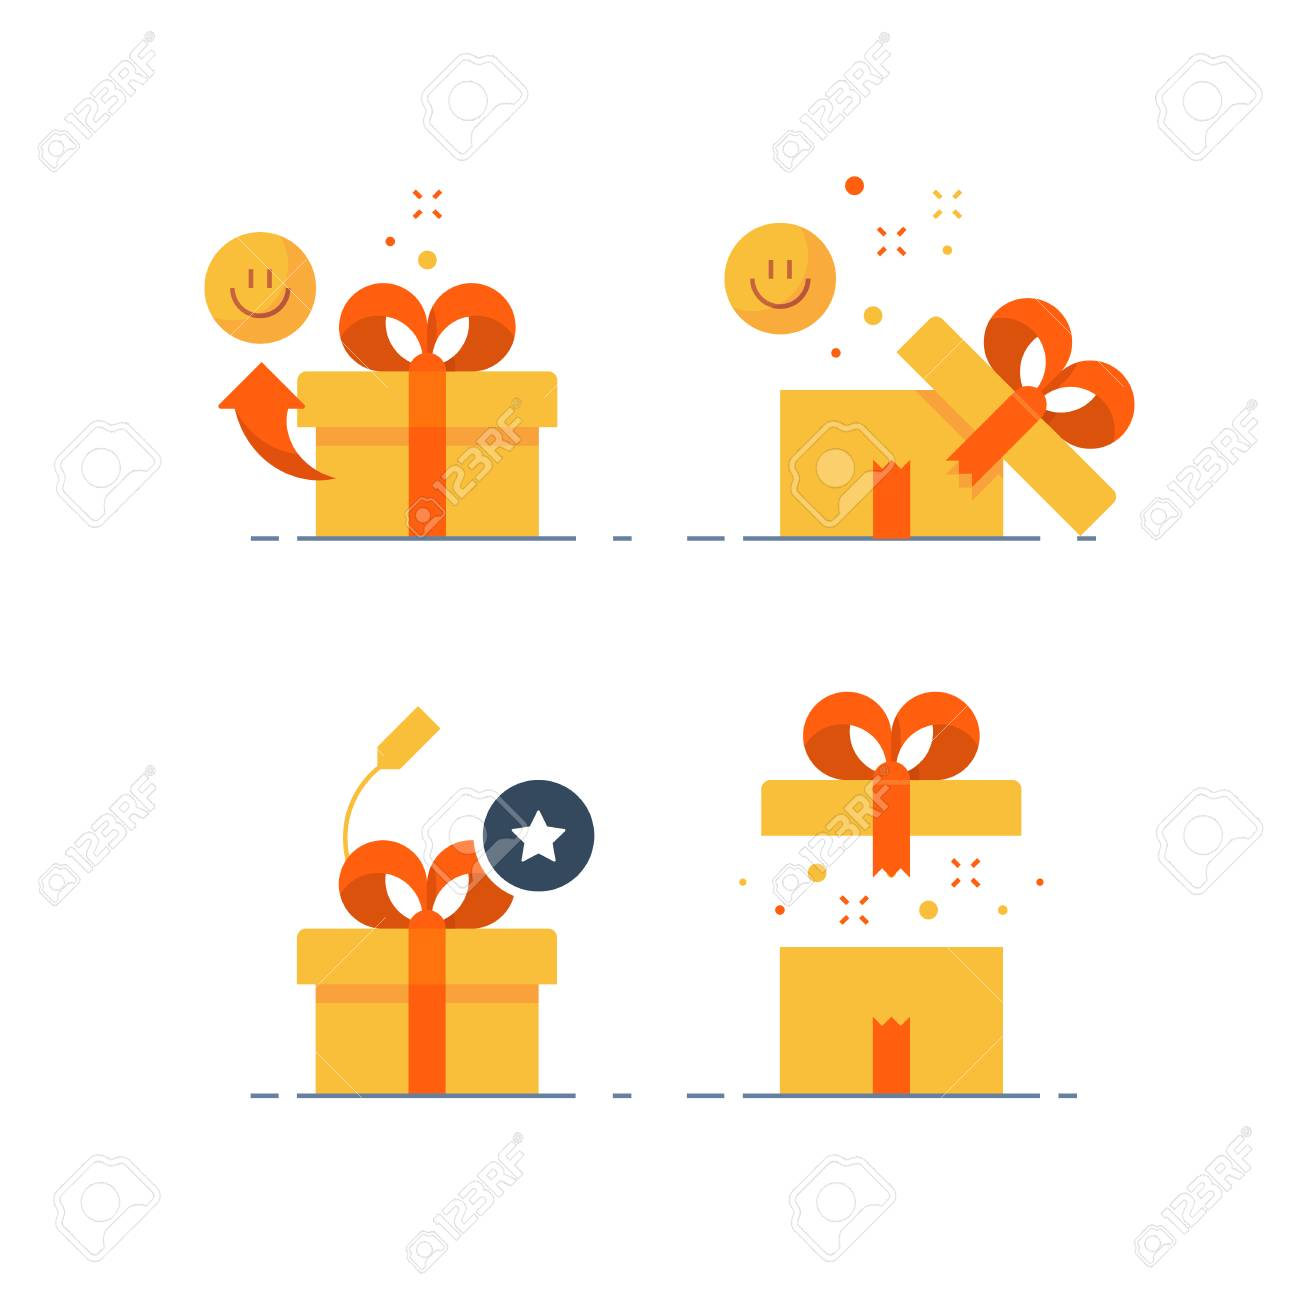 Surprising gift set, prize give away, emotional present, fun experience, unusual gift idea concept, opened yellow box with red ribbon, flat design icon, vector illustration. - 93964436